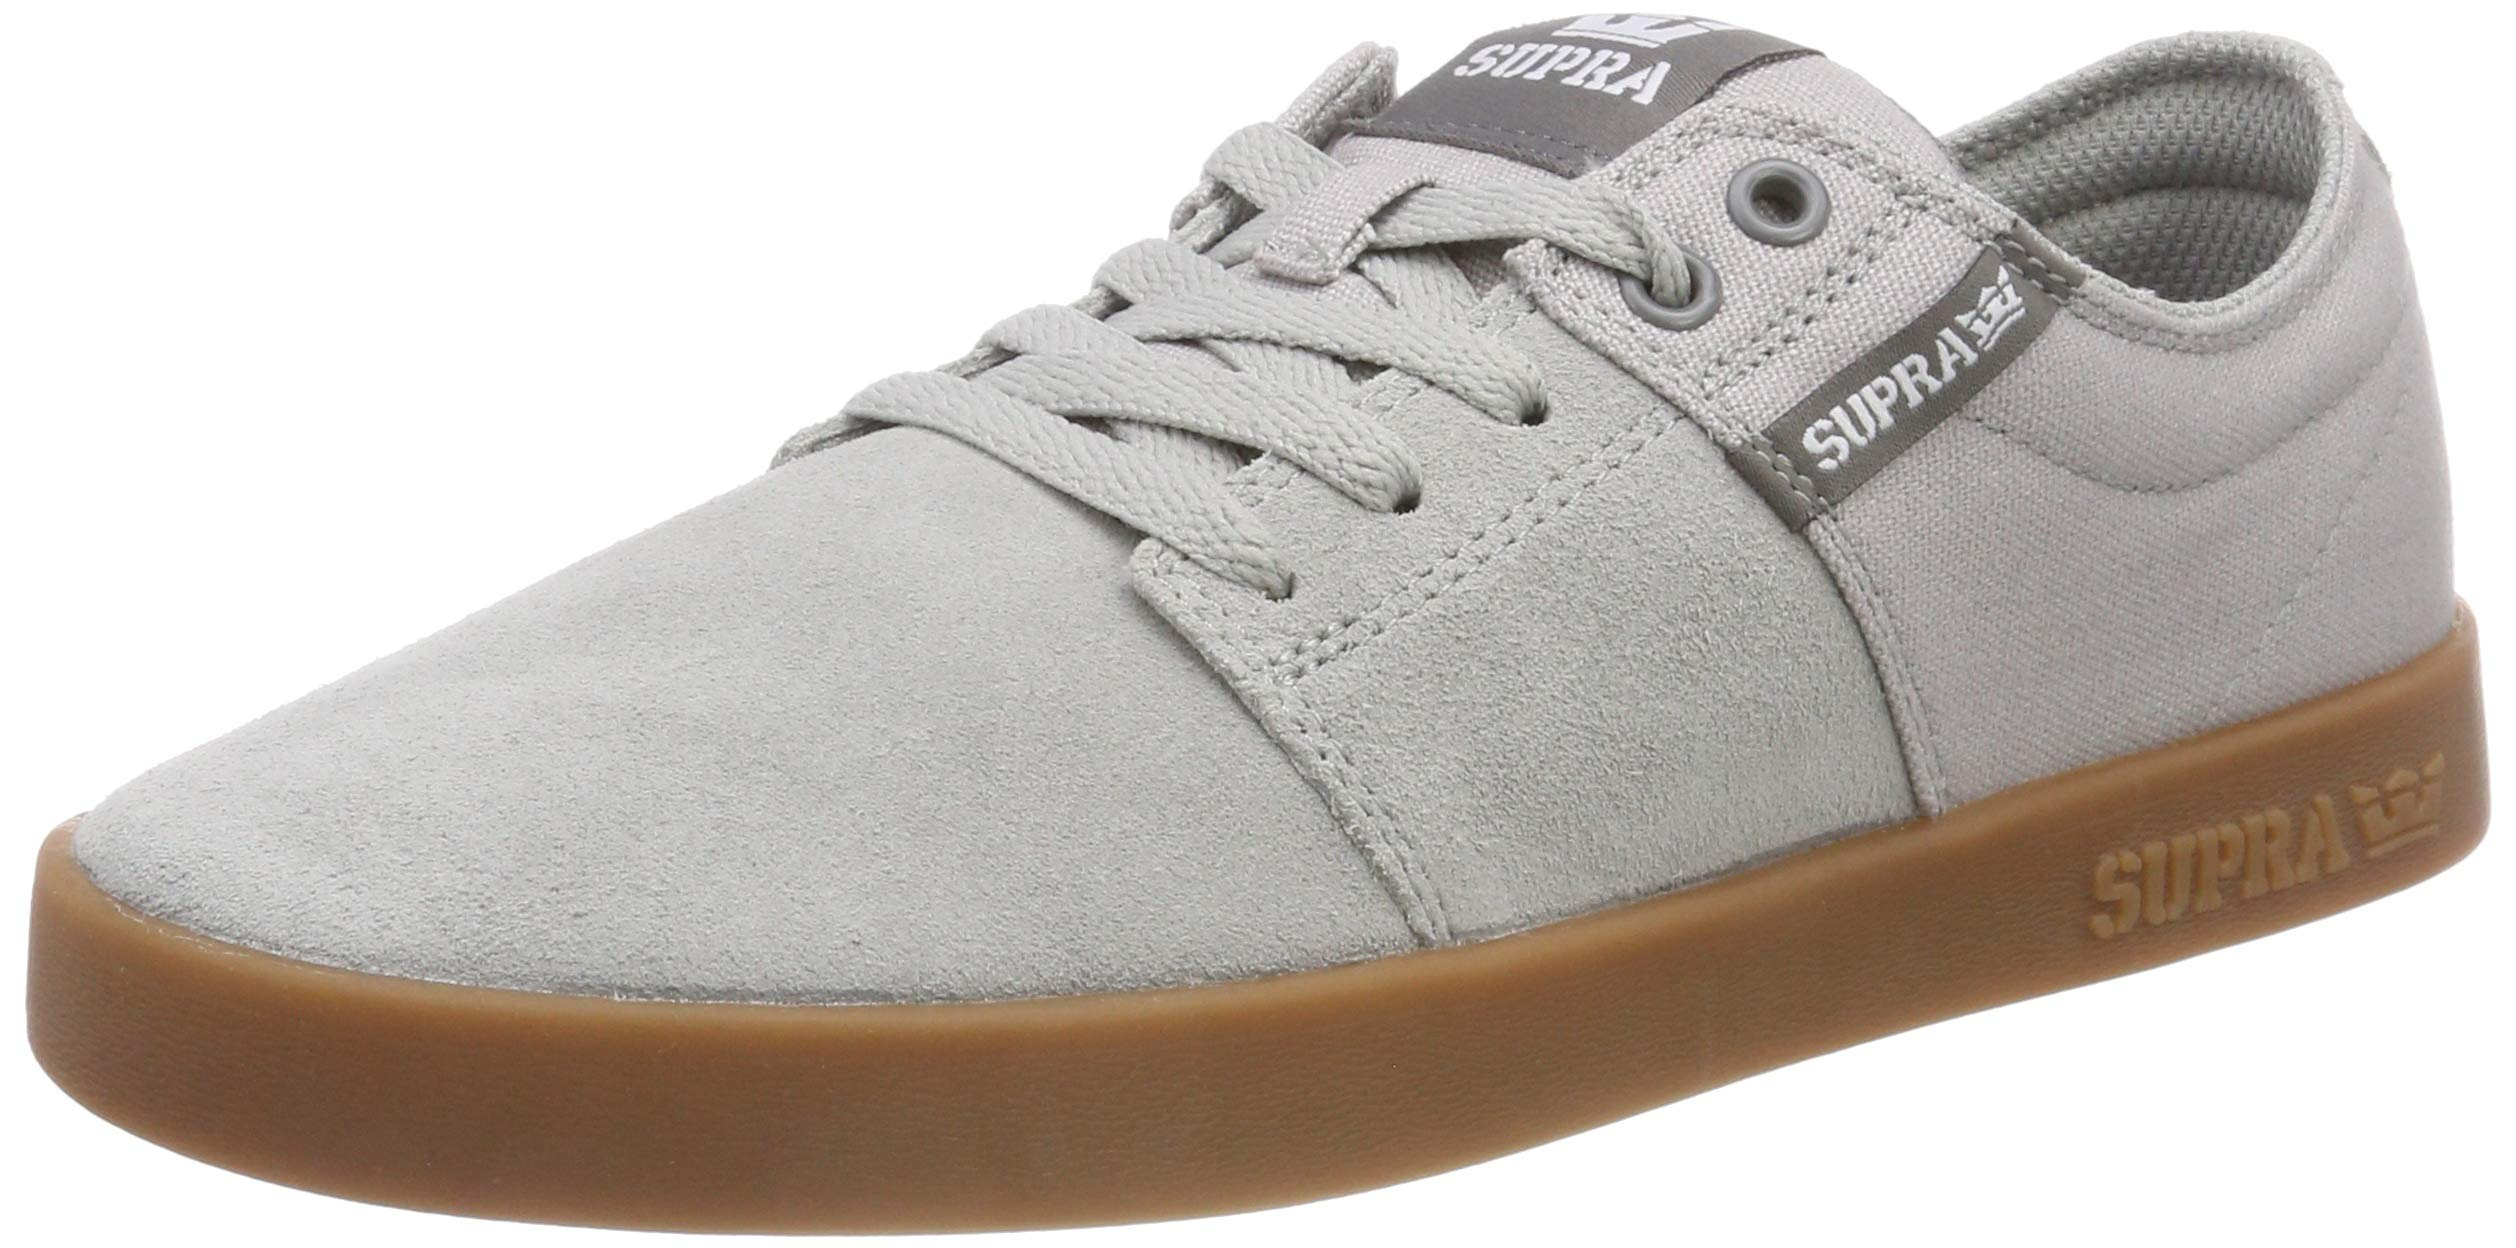 39329ff0c37a Galleon - Supra Men s Stacks II Shoes